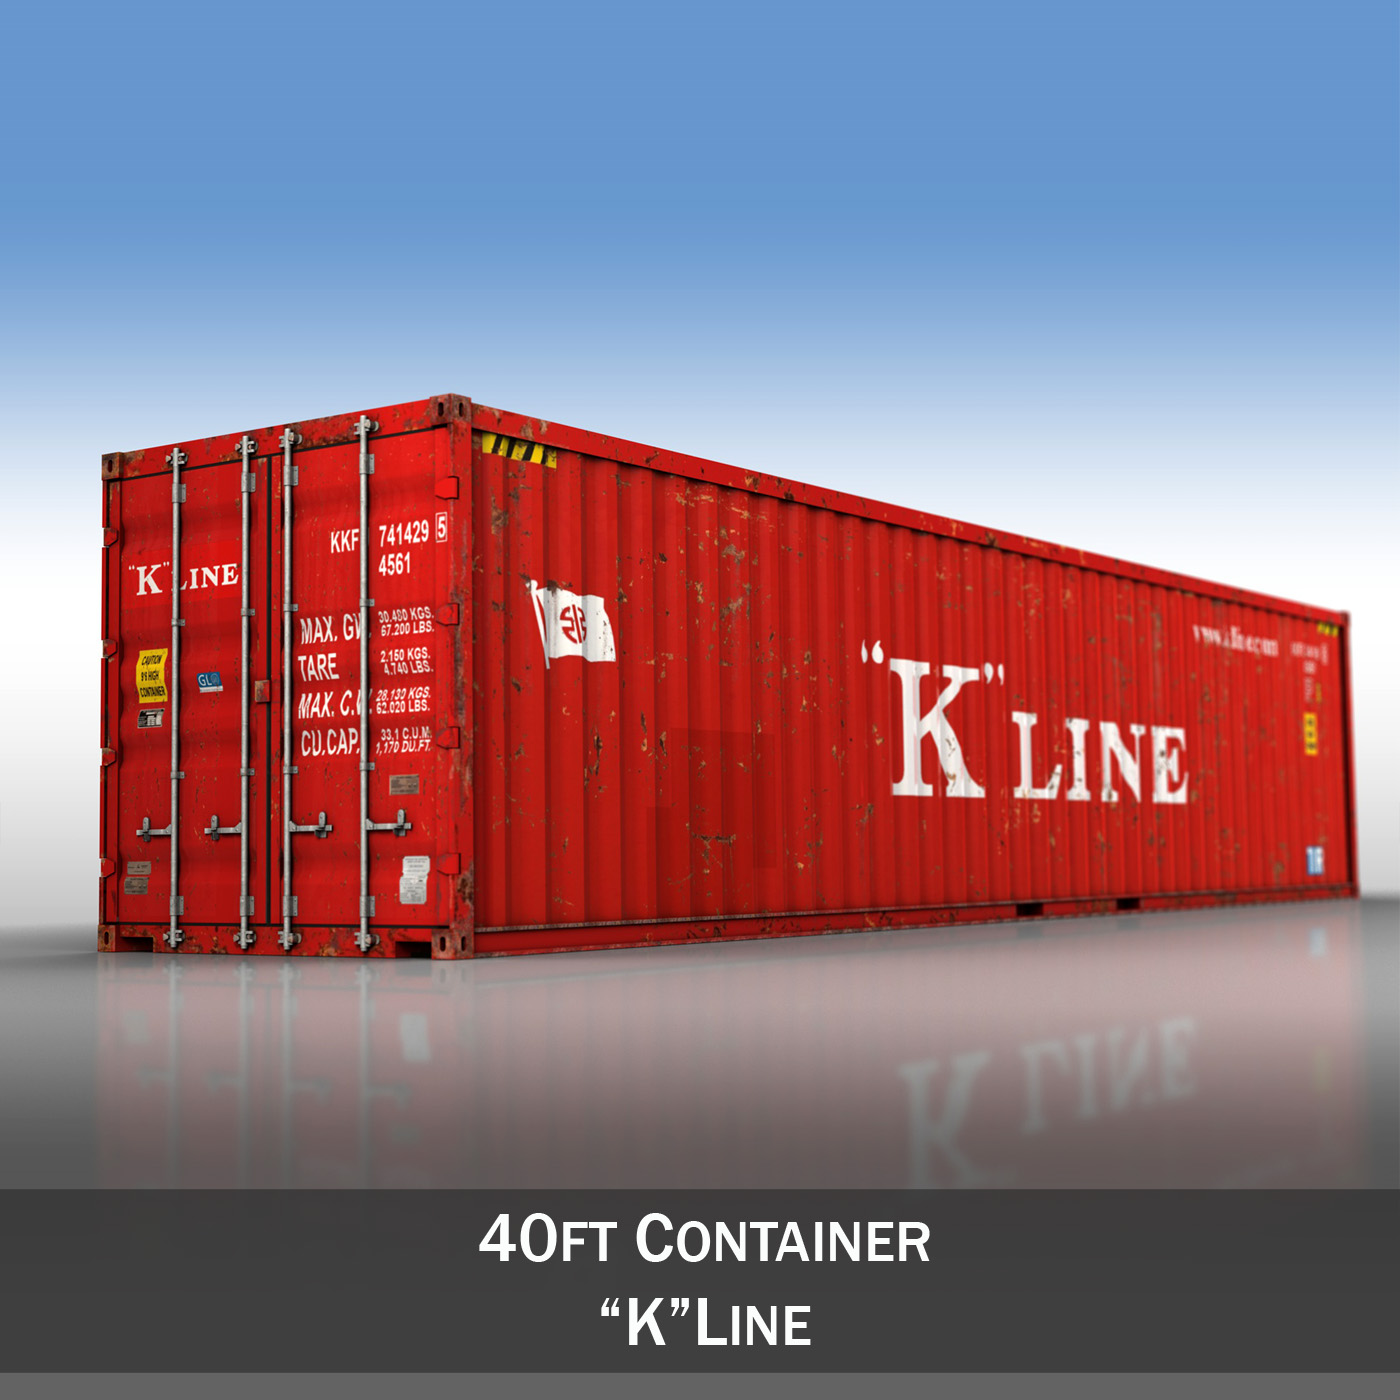 40ft shipping container – k line 3d model 3ds fbx lwo lw lws obj c4d 265115